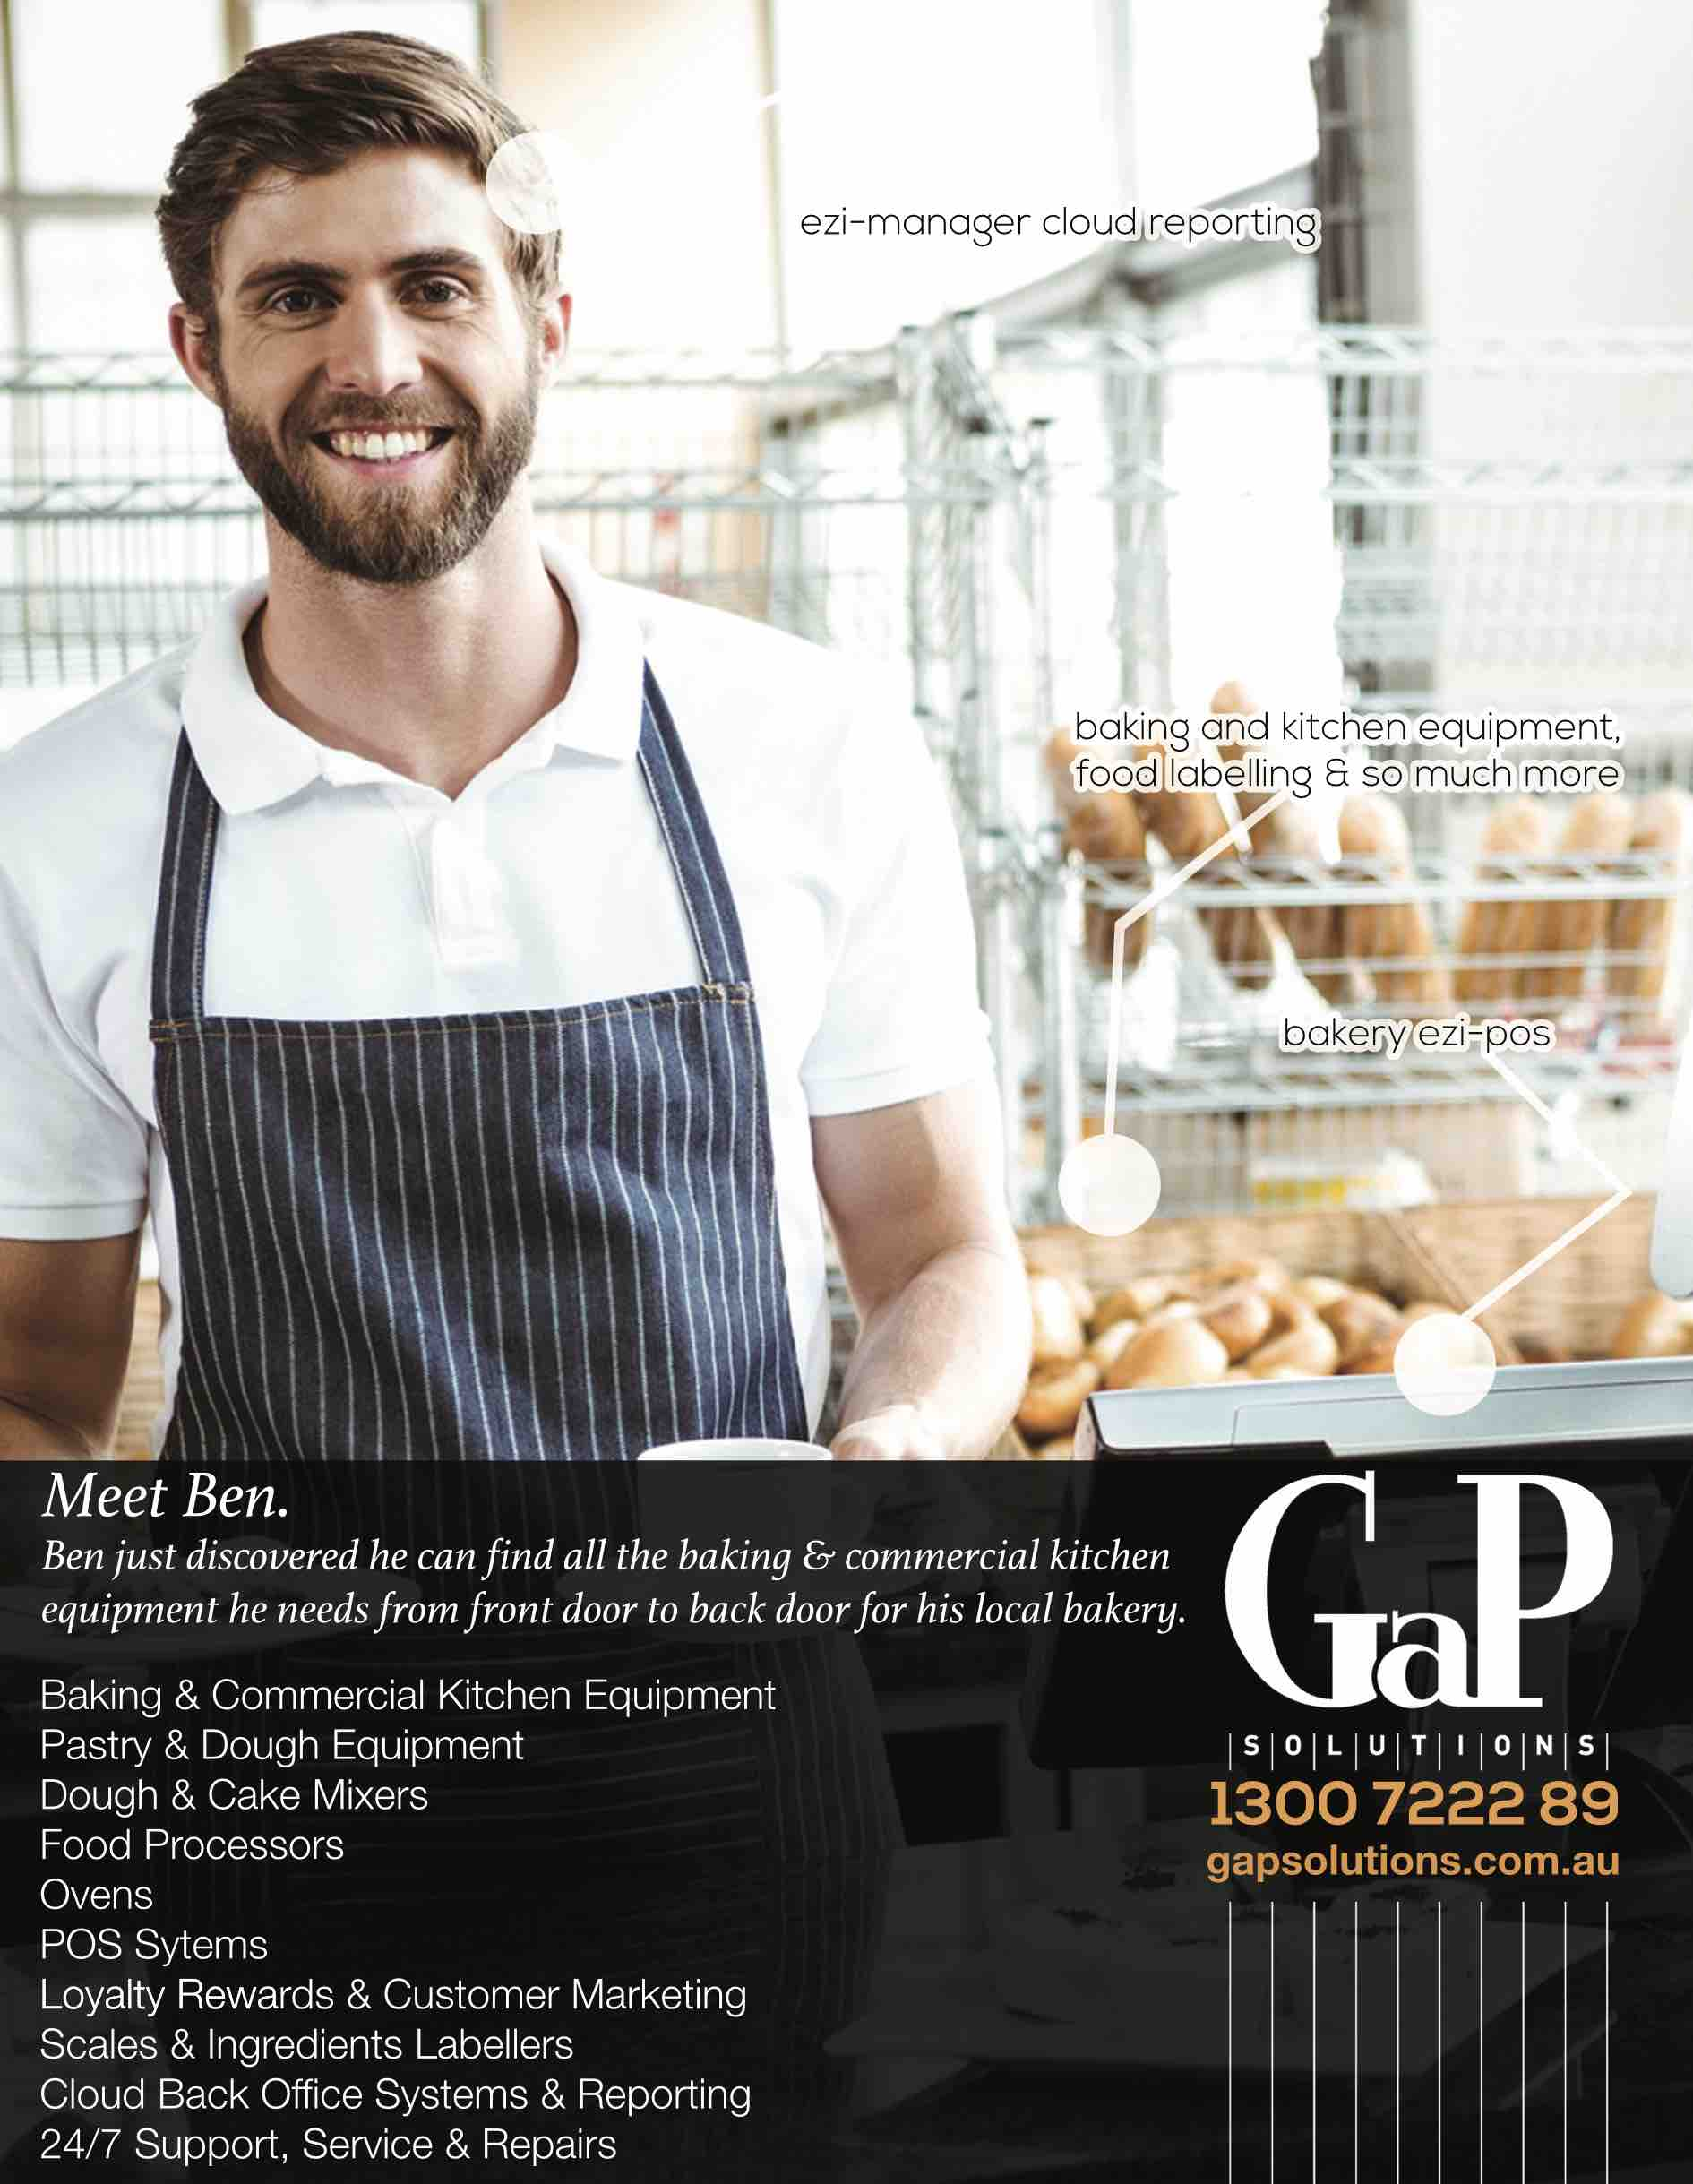 All Bake Services now serviced by GaP Solutions